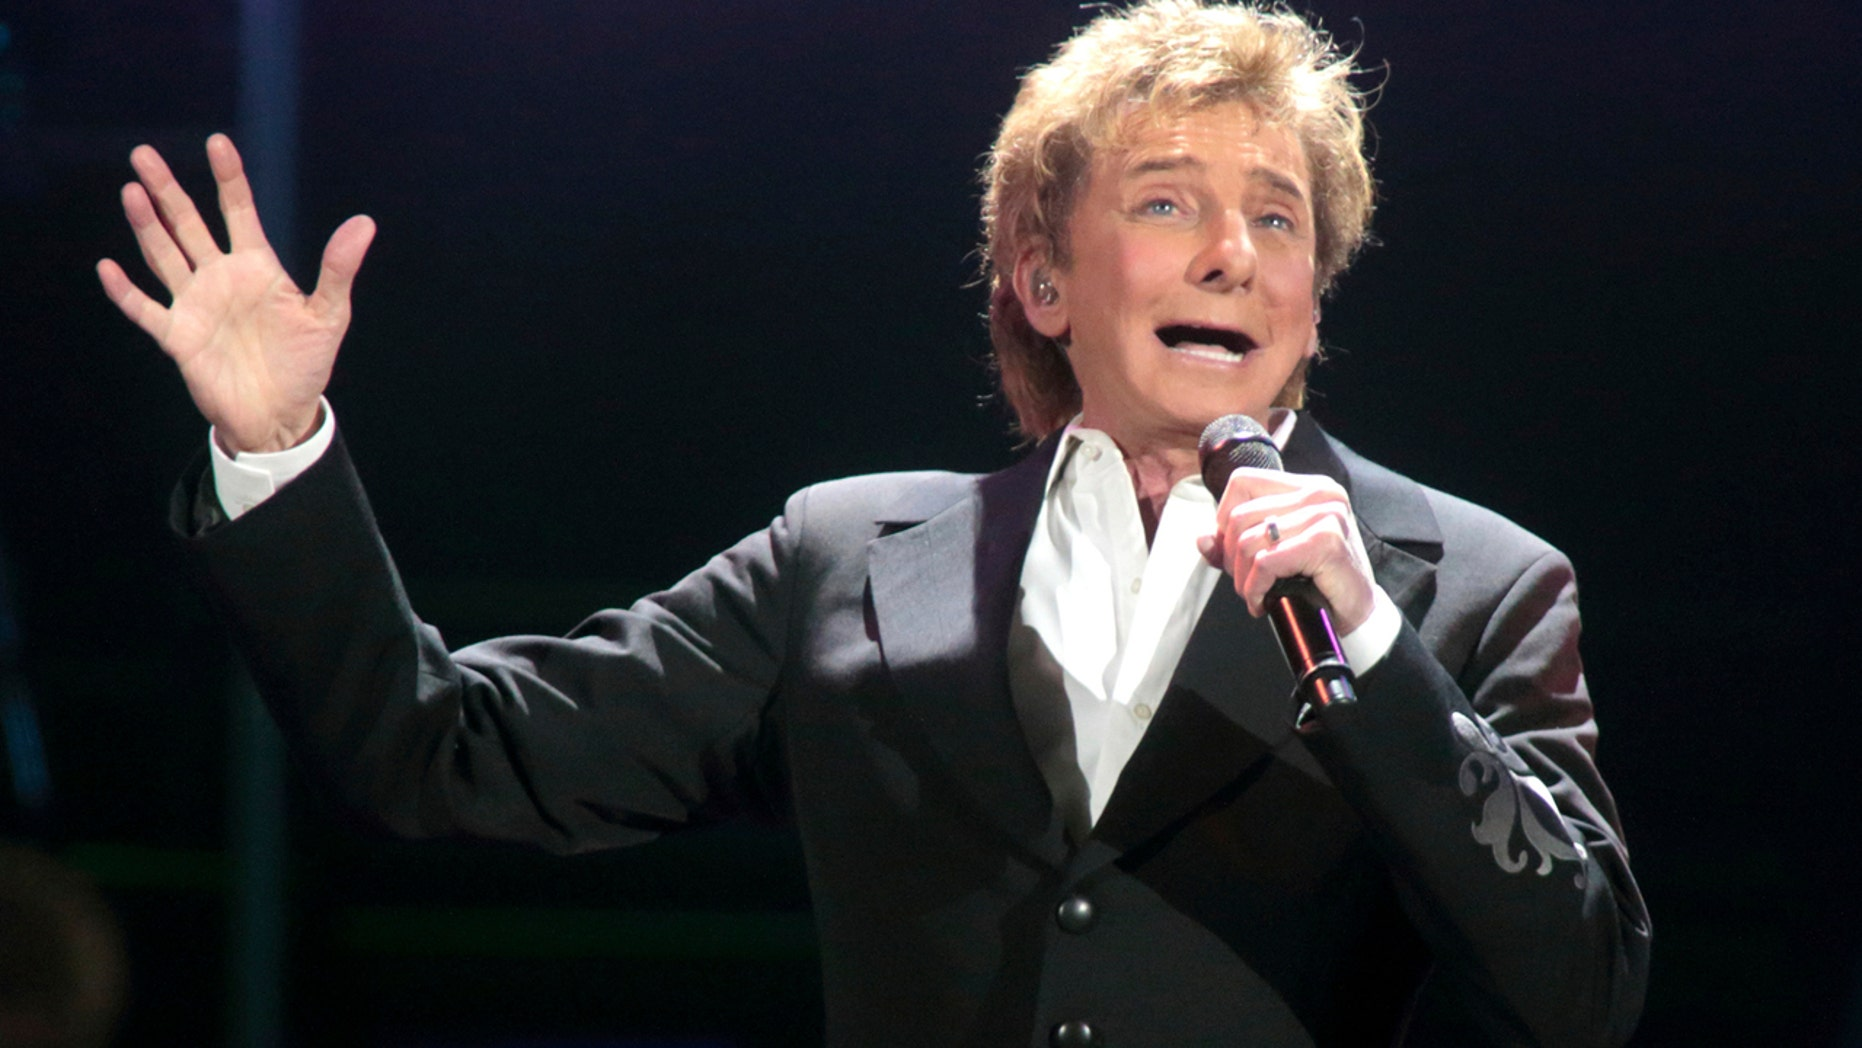 Barry Manilow opened up about being gay in a rare interview about his private life.